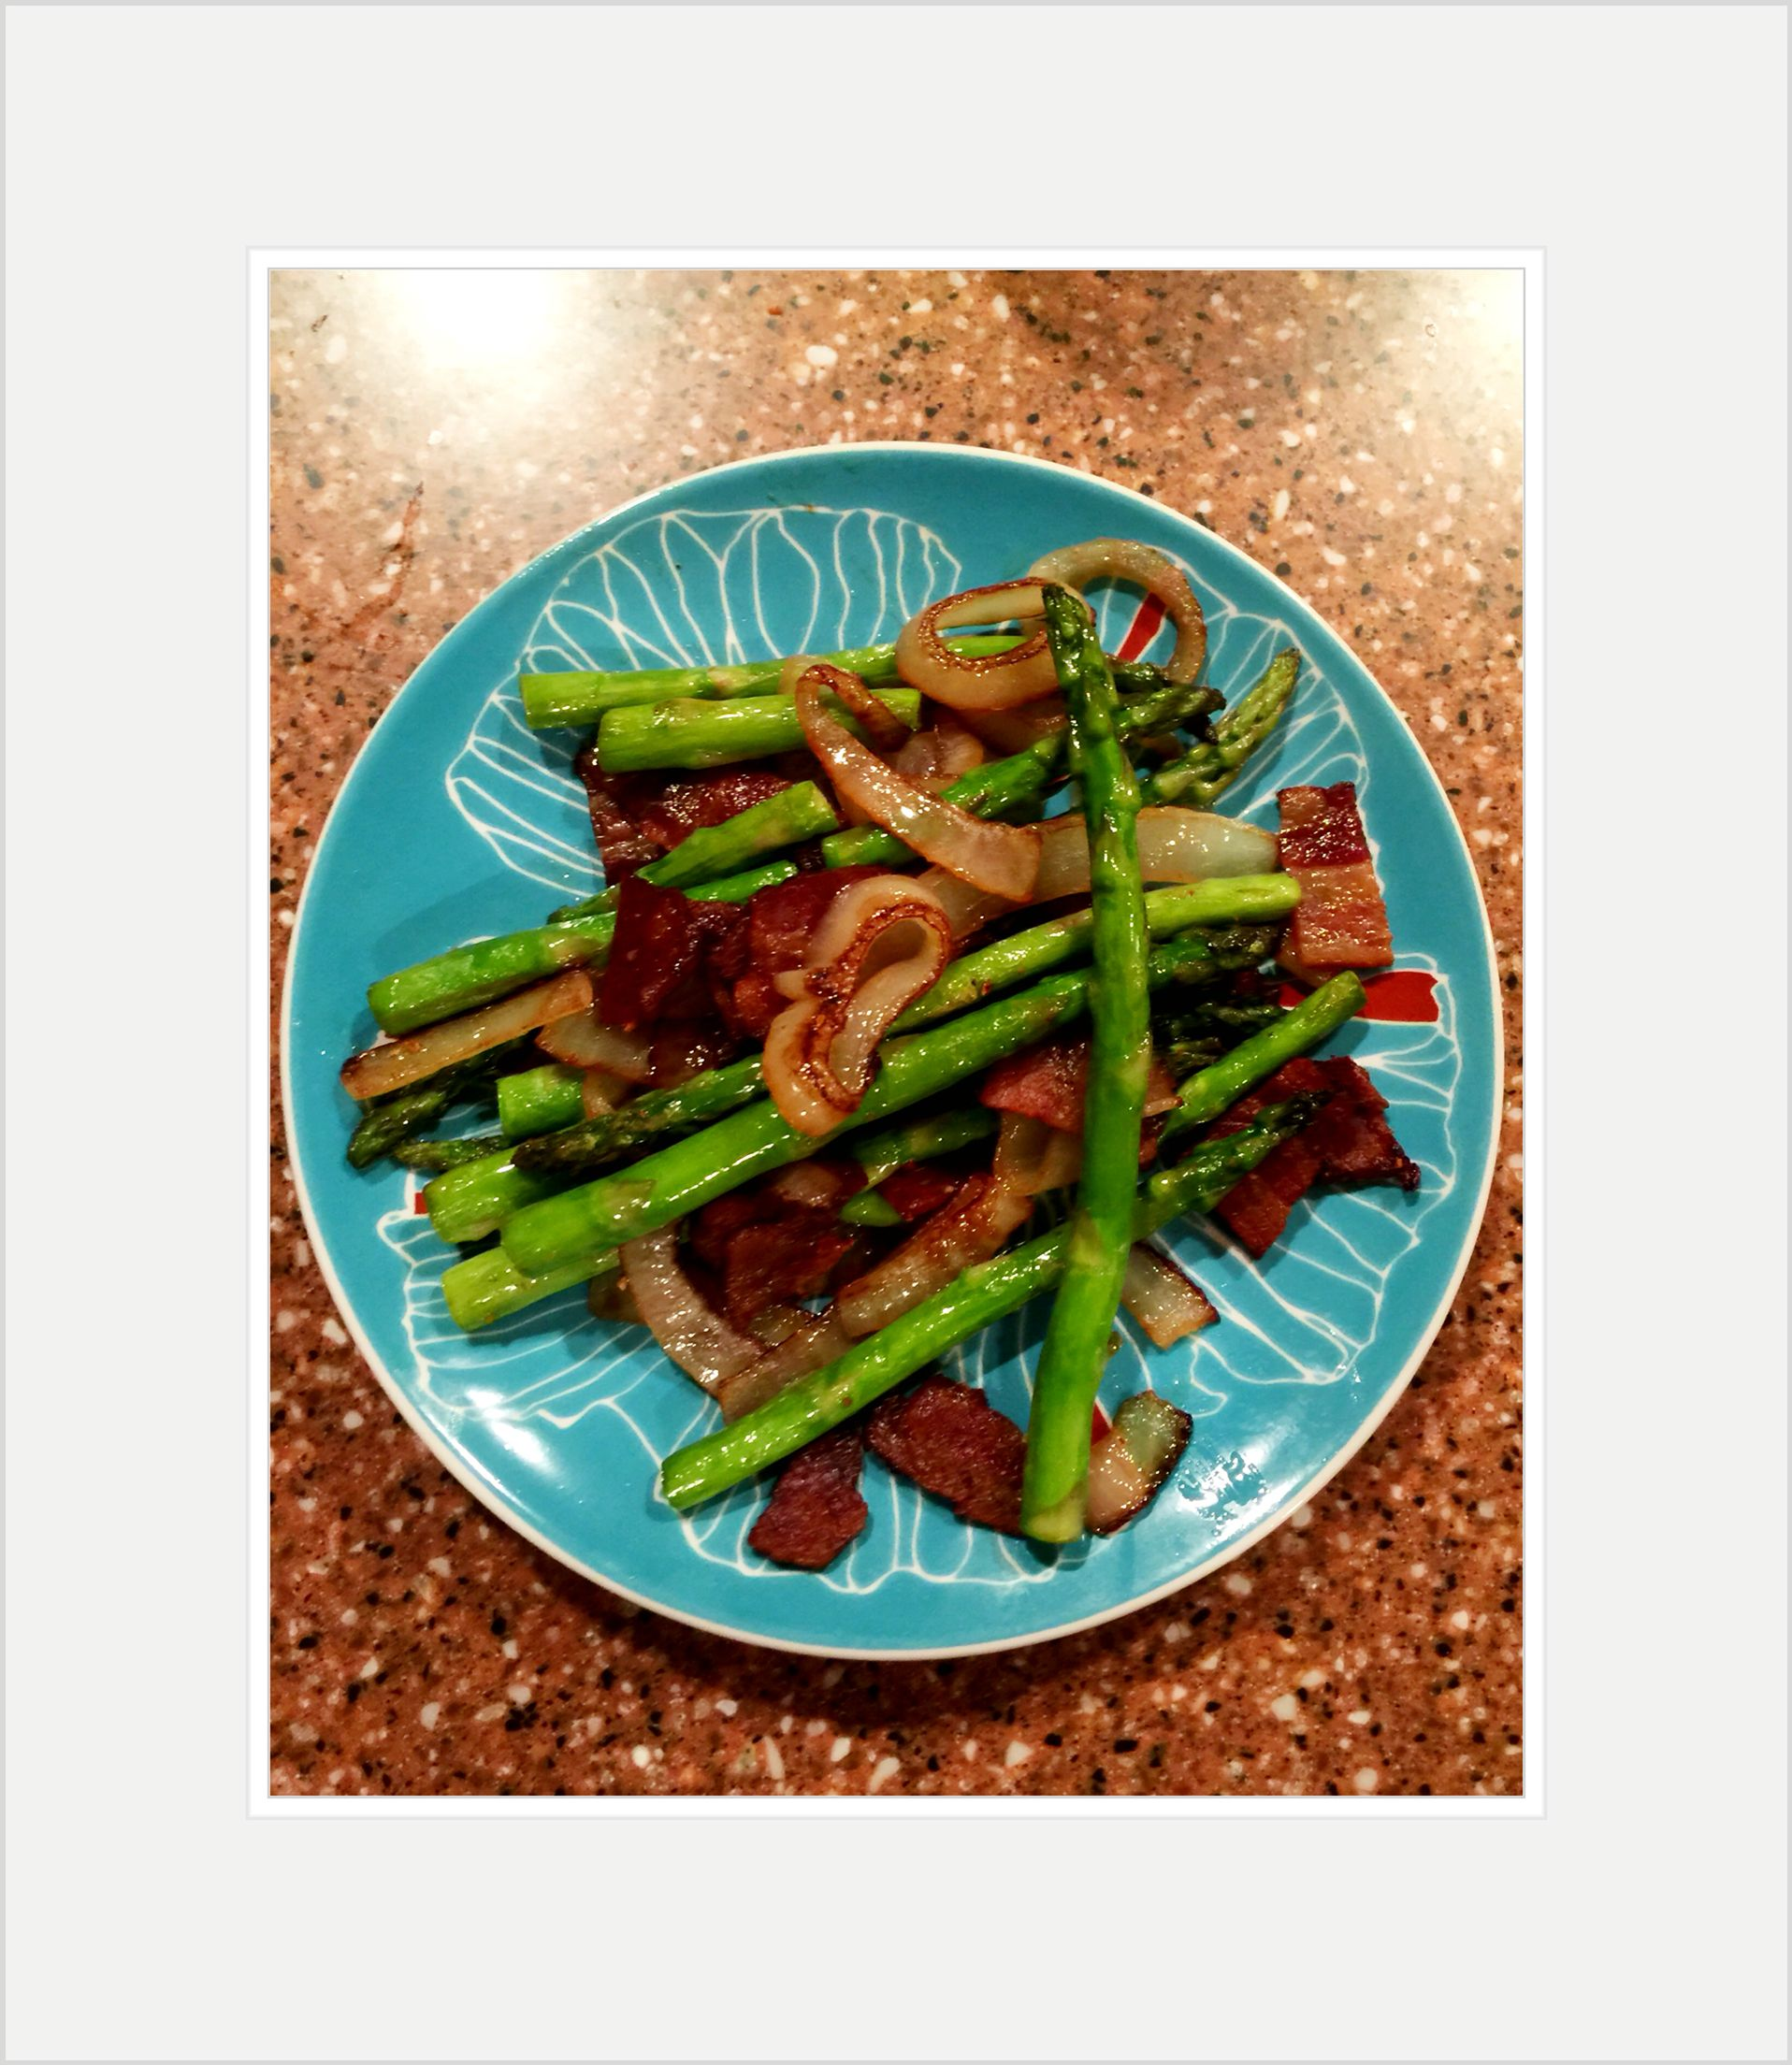 Asparagus, bacon and sautéed onions cooked in olive oil with a touch of garlic and sea salt